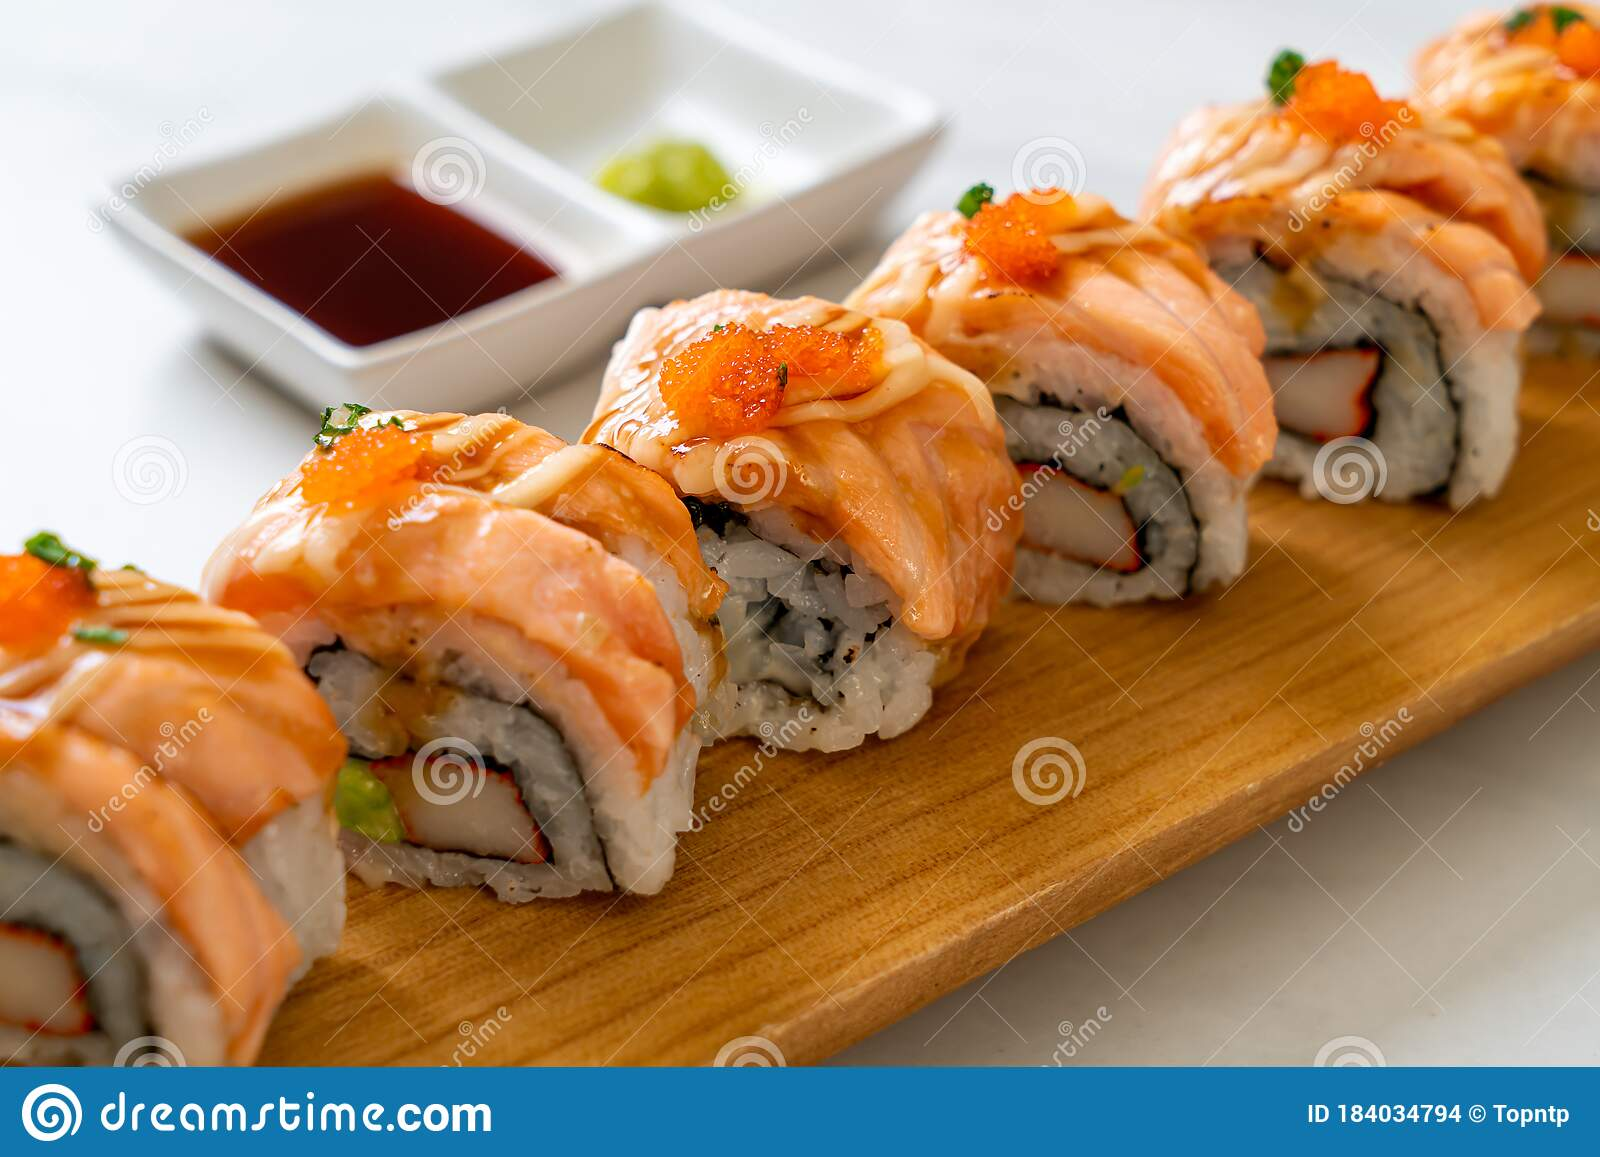 Grilled Salmon Sushi Roll With Sauce Stock Photo Image Of Roll Dinner 184034794